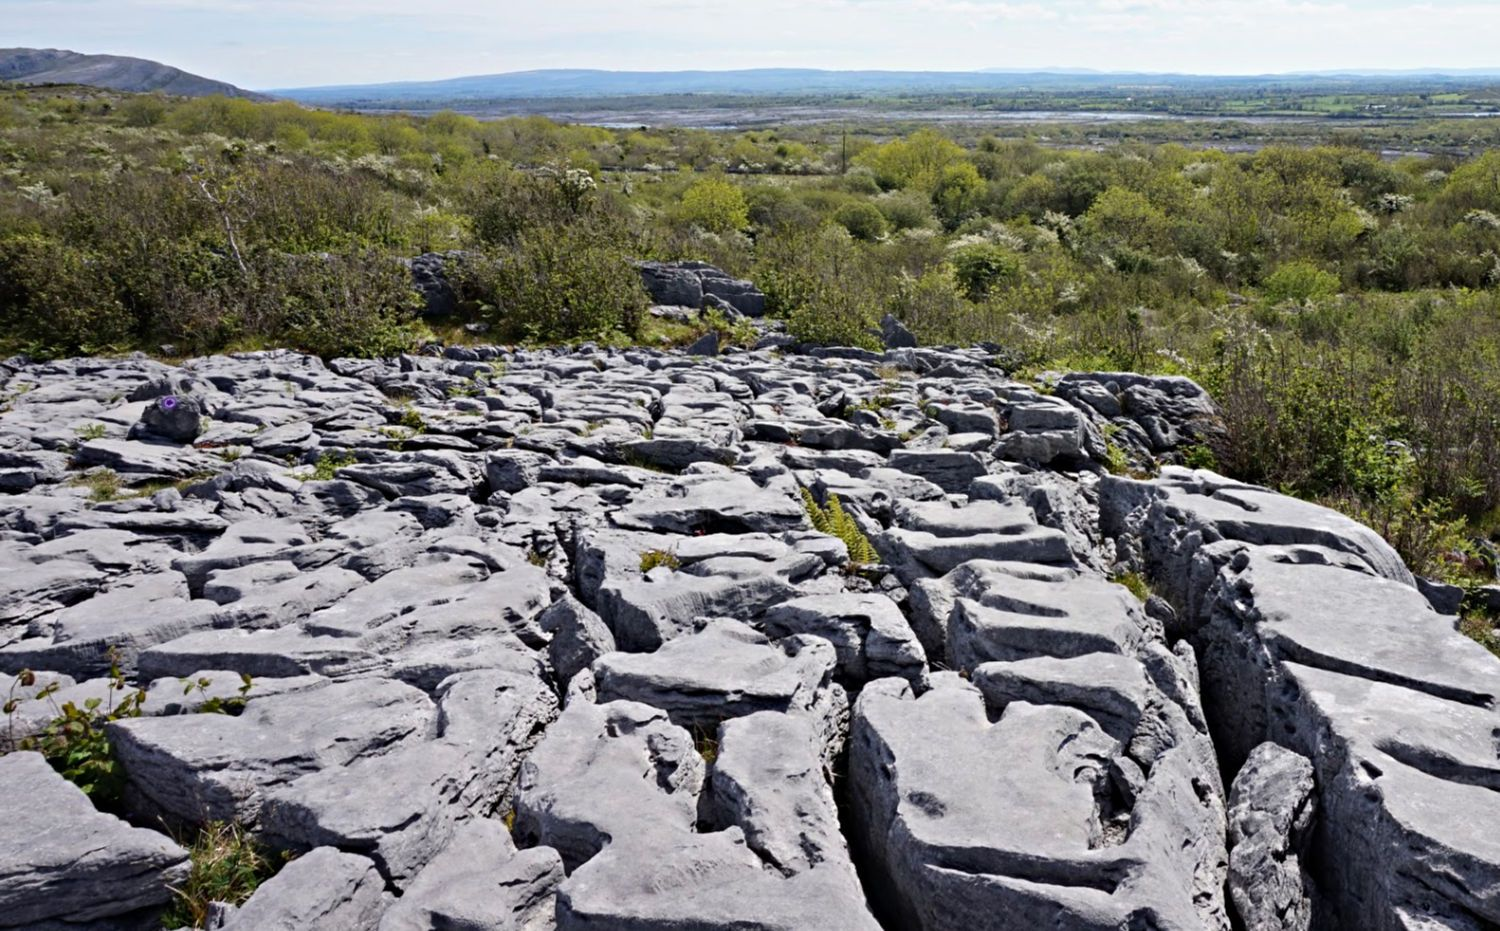 Well, there are quite a few grikes and clints in this slabby scene in The Burren.